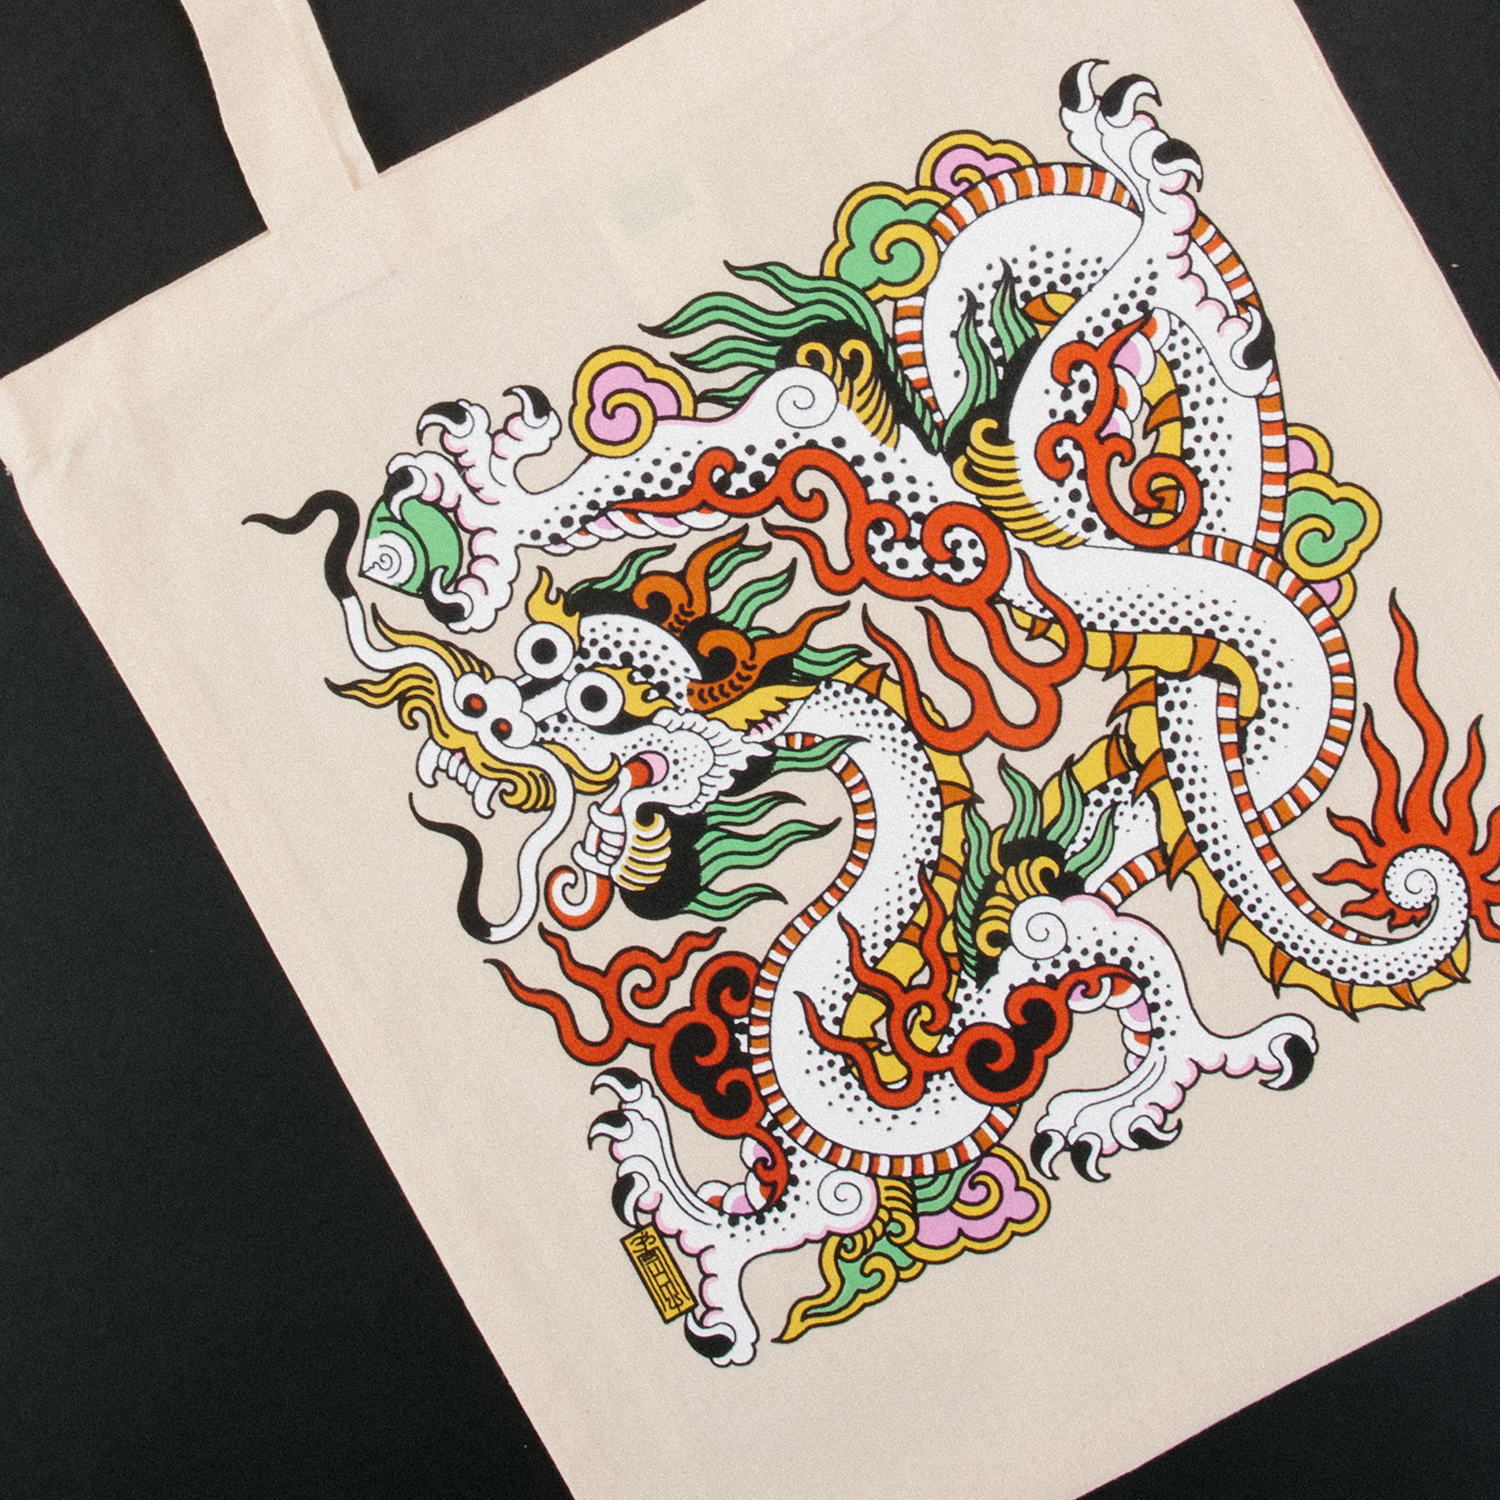 Sway, tattooer, tattooist, The Travelling Canvas, Awesome Merchandise